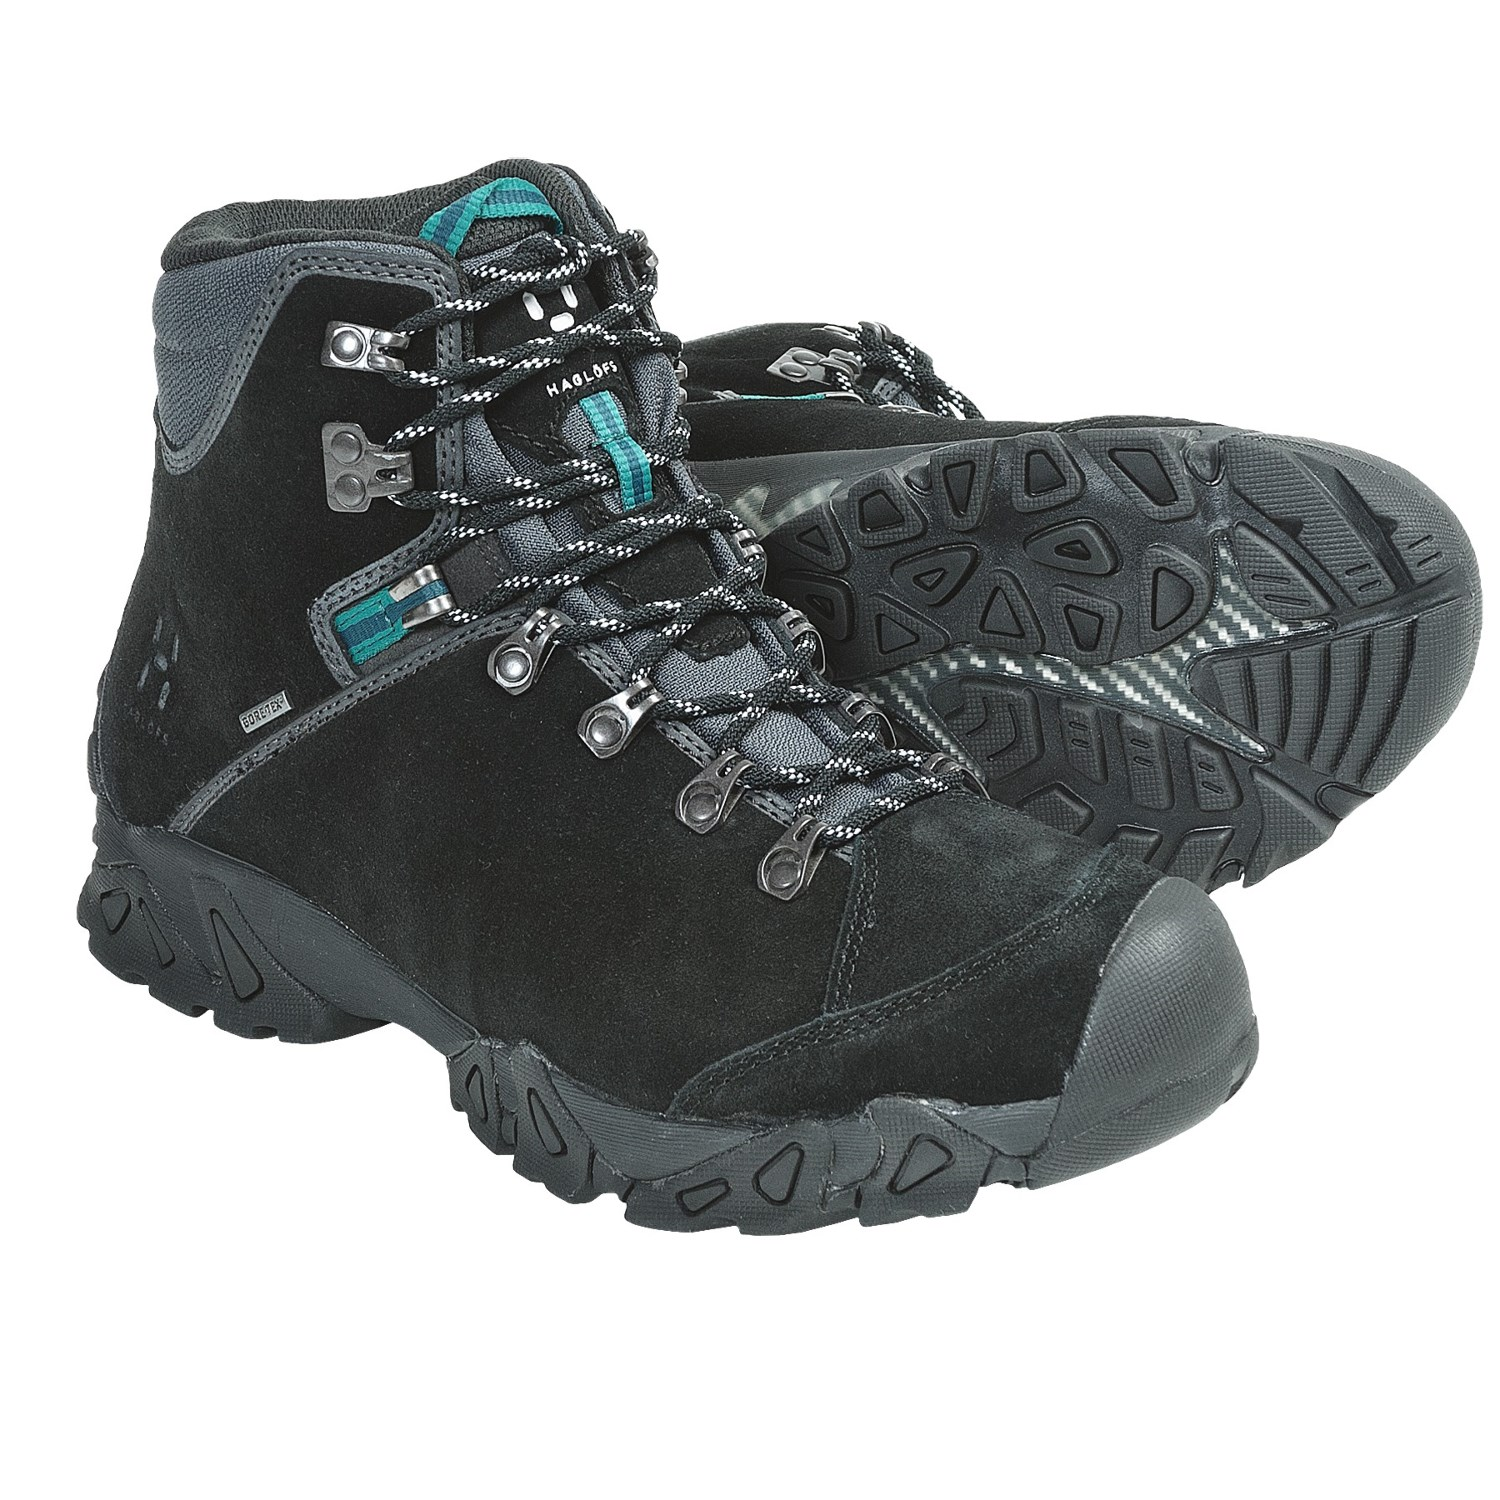 Suede Hiking Boots for Women